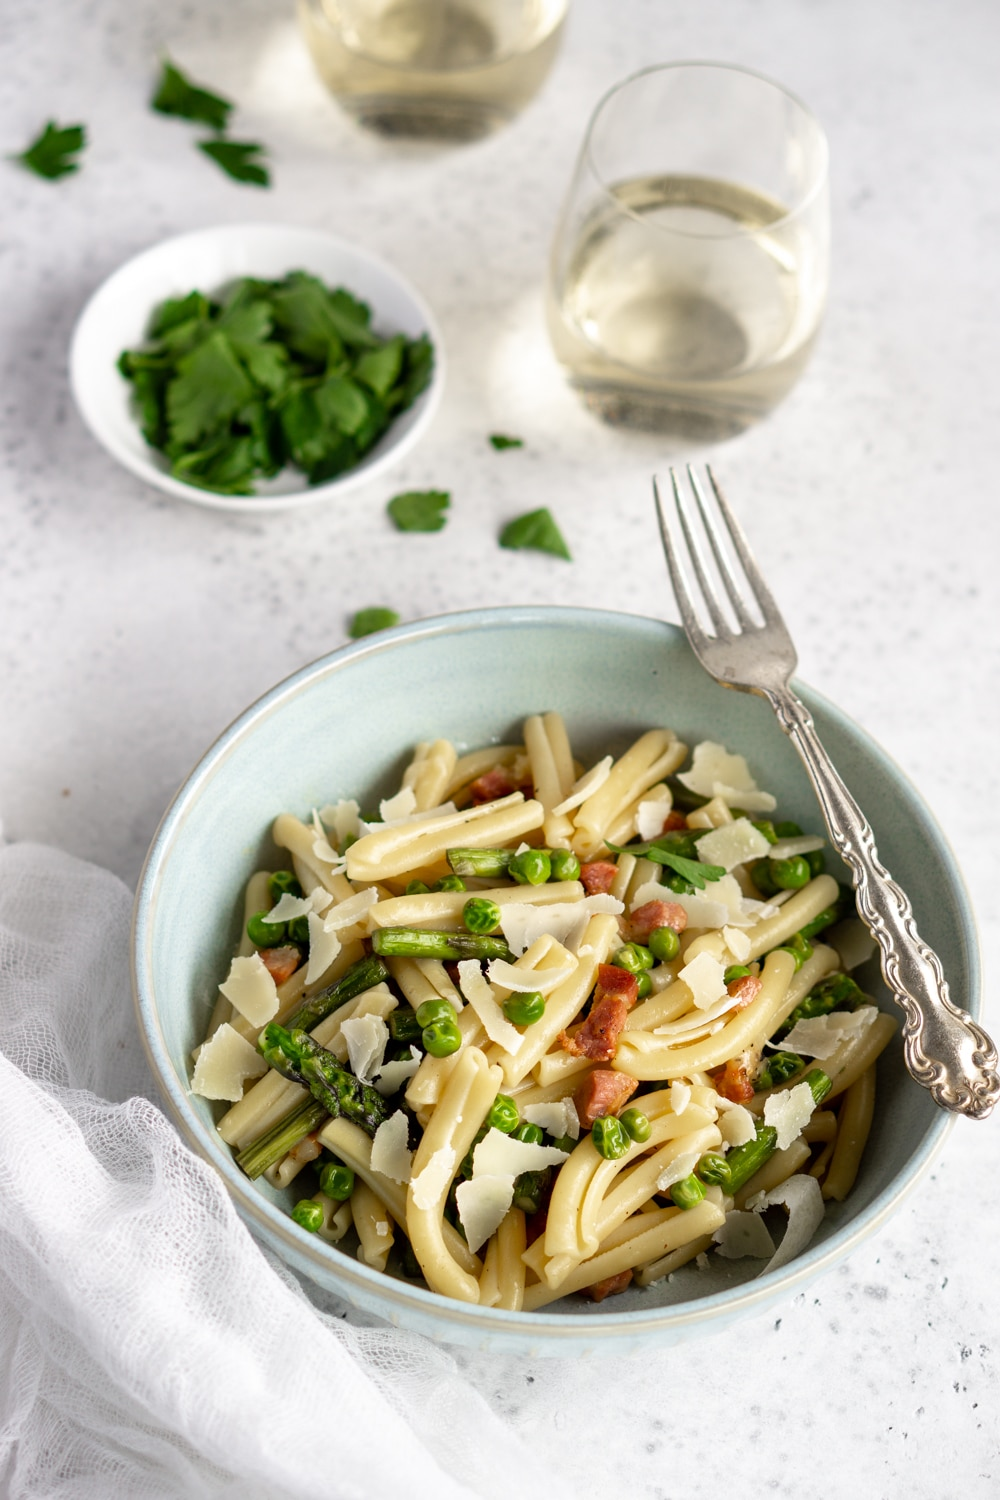 asparagus pasta with pancetta and peas with parslry and a glass of wine in the background